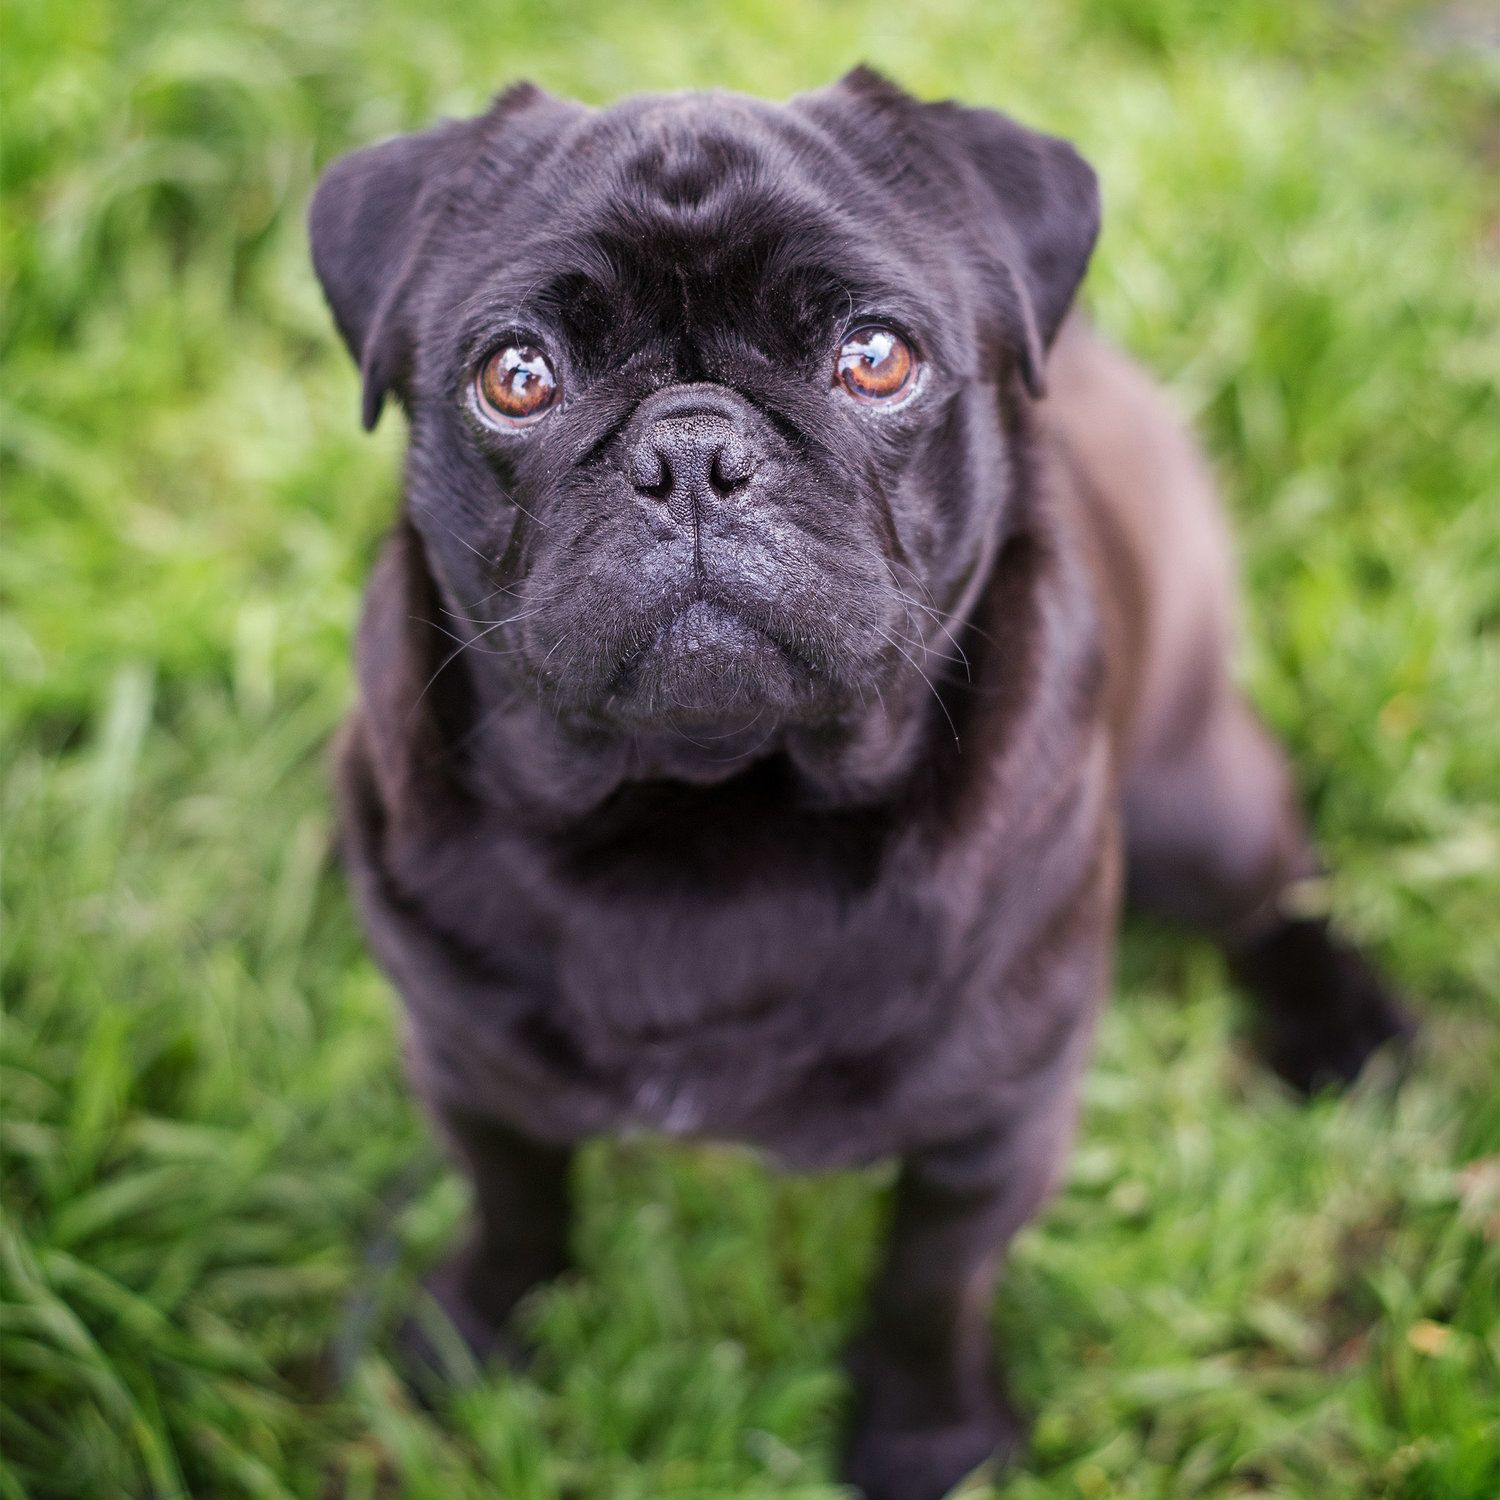 Pug Yarra Valley Pet Photographer Melbourne, Australia